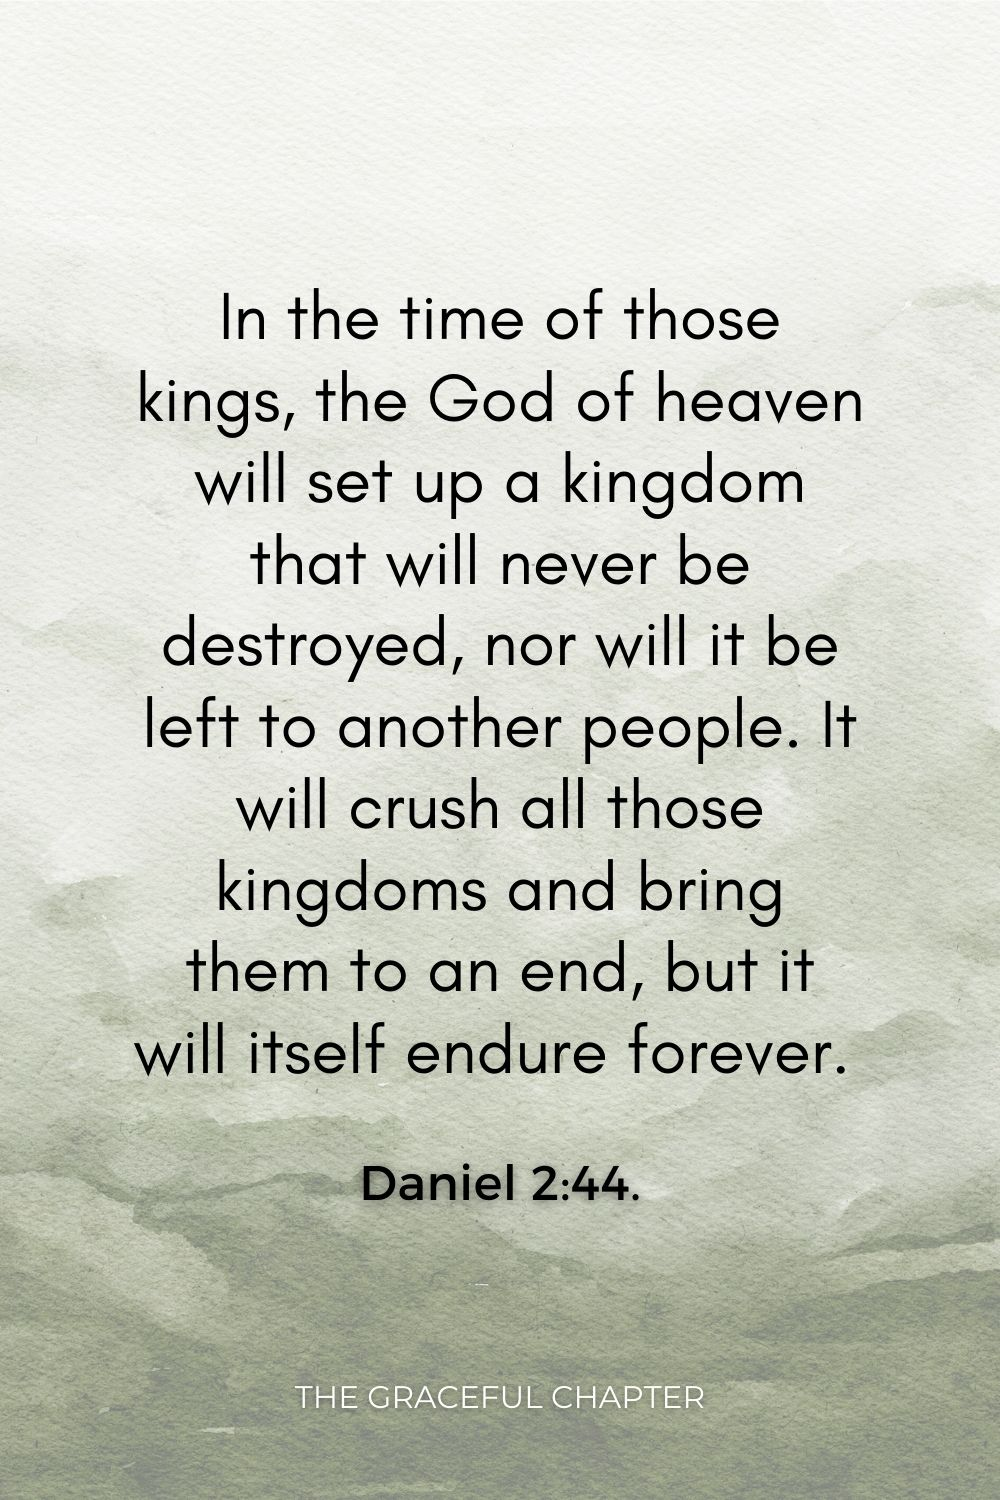 """""""In the time of those kings, the God of heaven will set up a kingdom that will never be destroyed, nor will it be left to another people. It will crush all those kingdoms and bring them to an end, but it will itself endure forever. Daniel 2:44."""